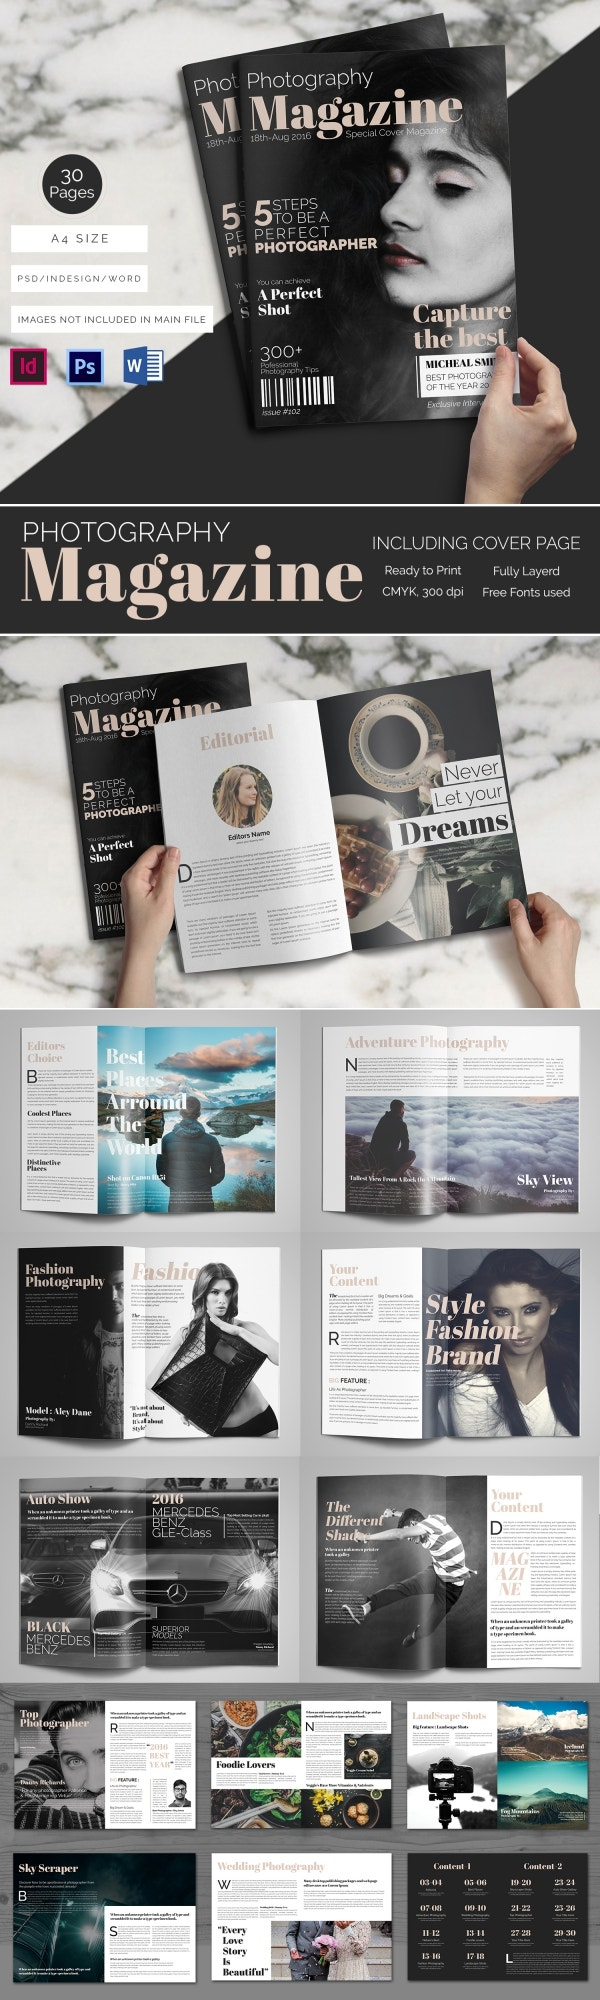 brand new magazine templates word psd eps ai perfect magazine for photographer 30 pages in word